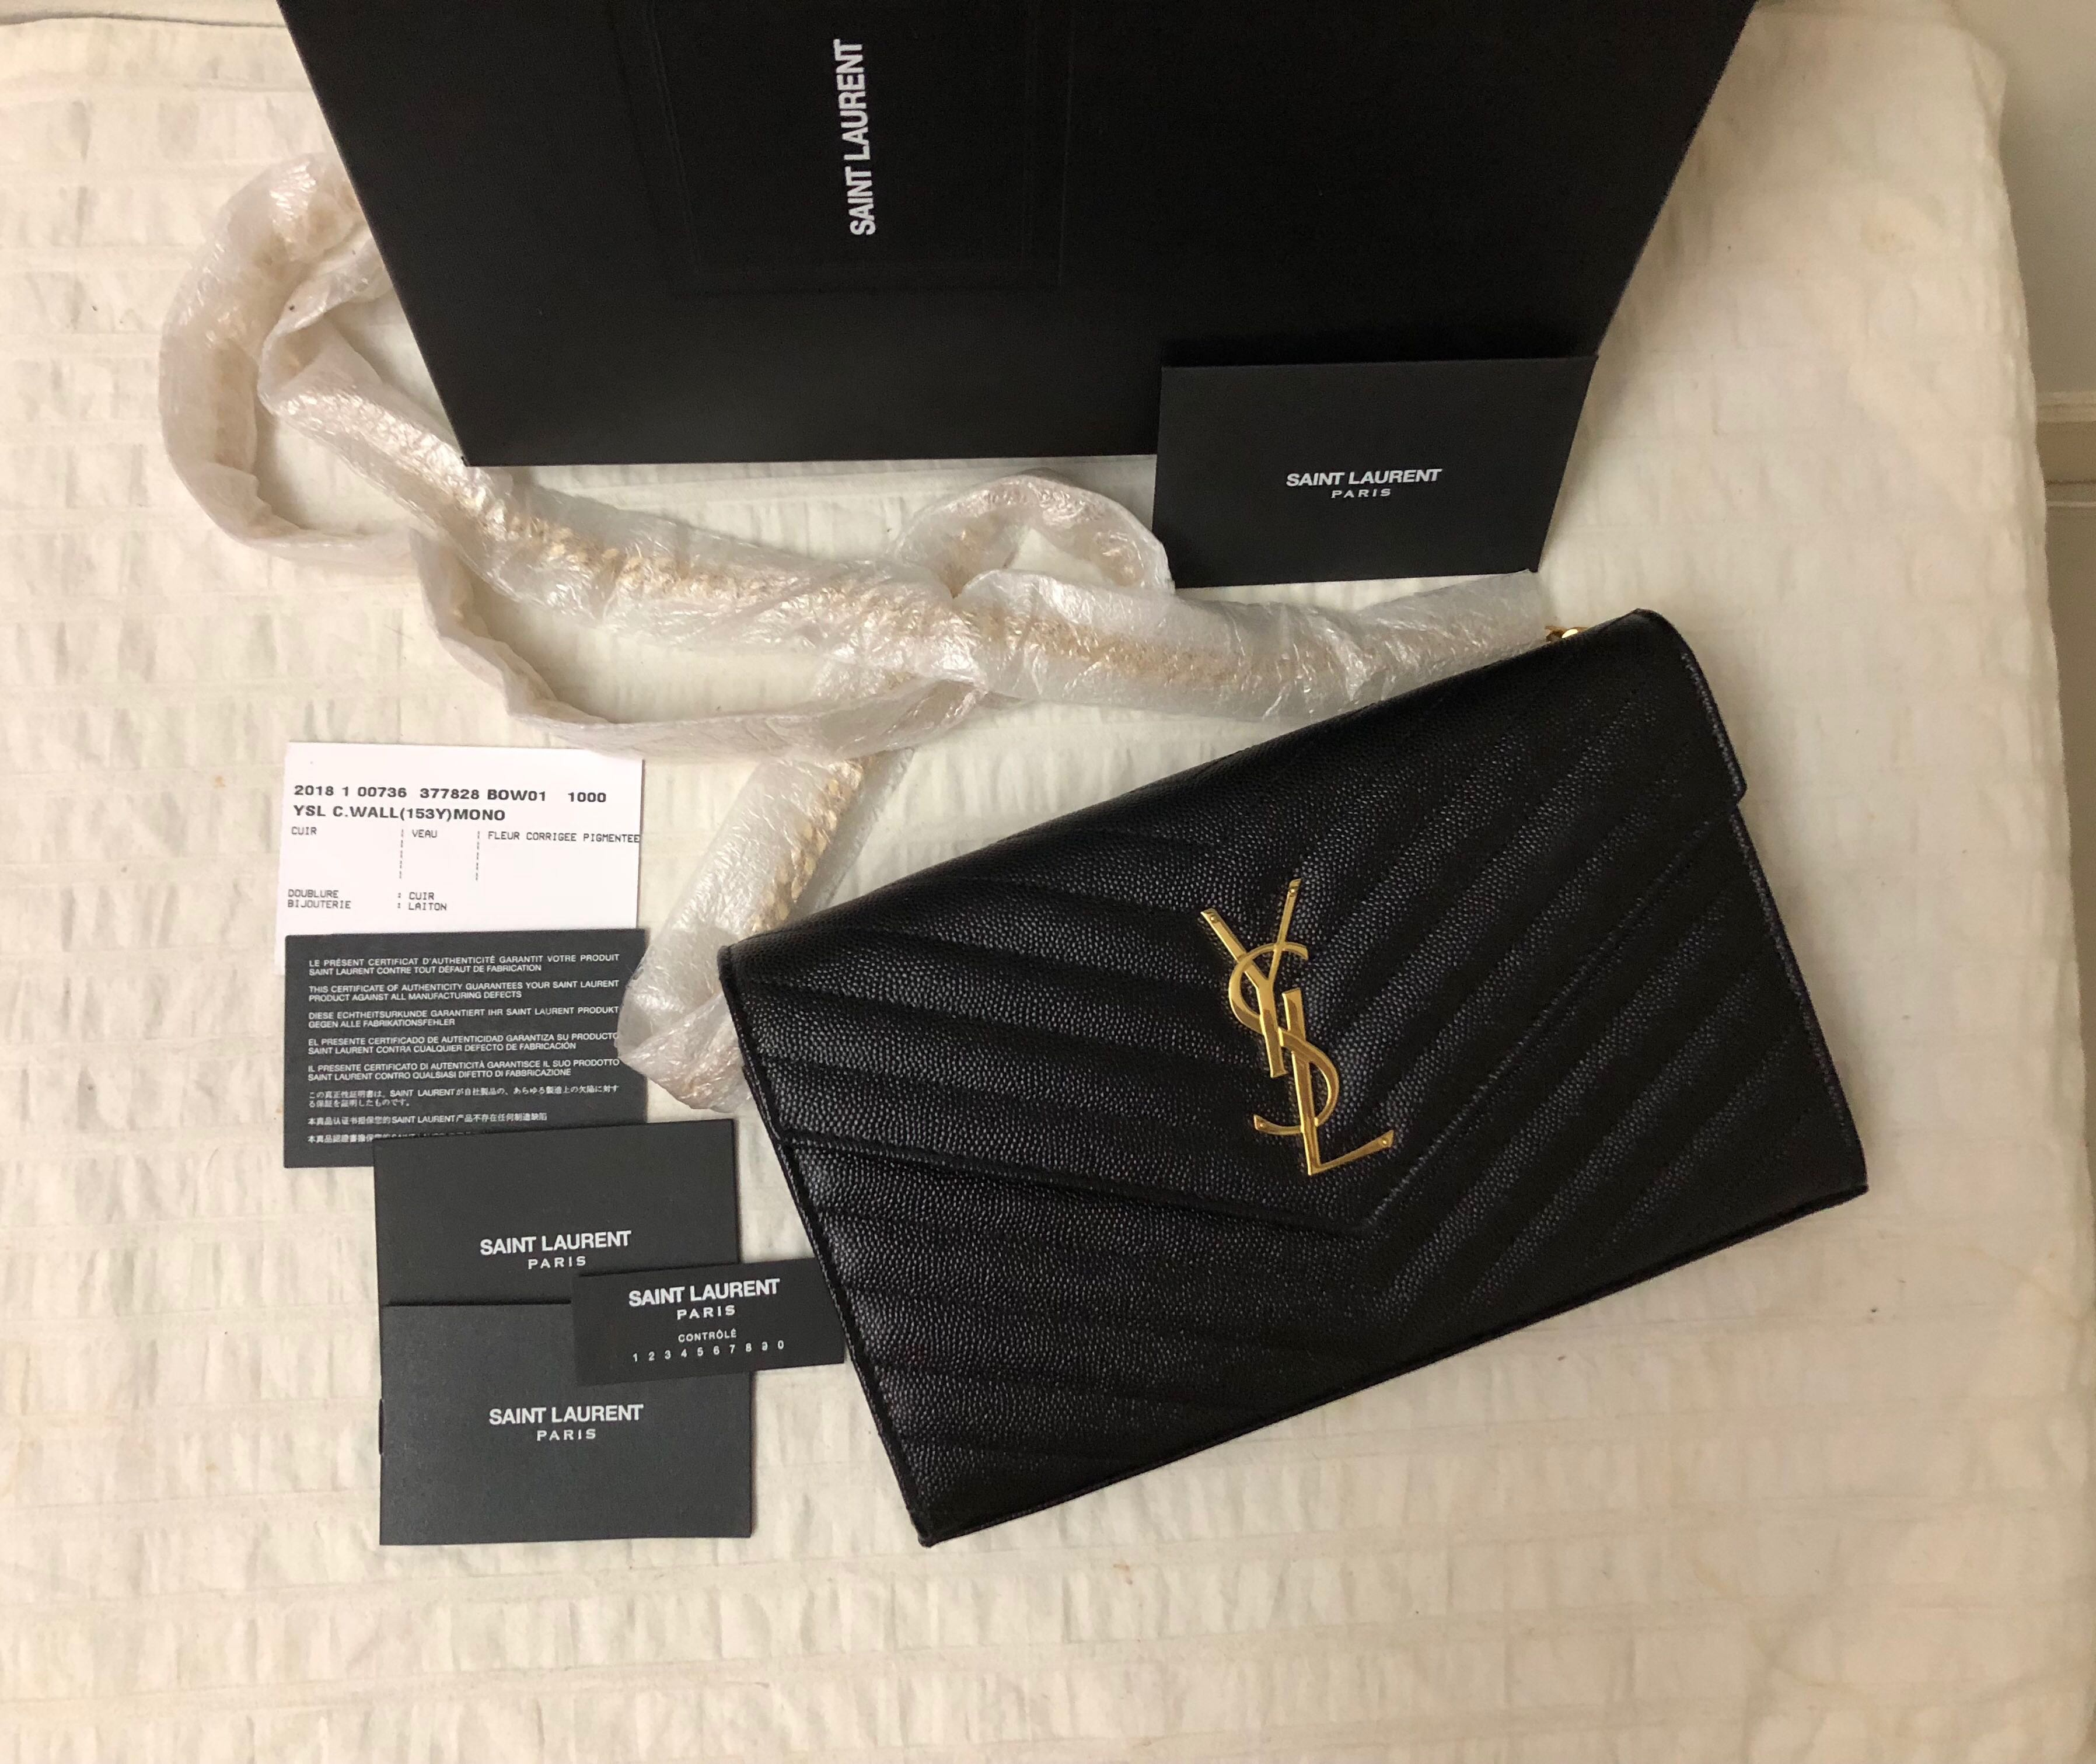 e8d2c0d4242 [New w Receipt] Authentic Large Saint Laurent YSL Wallet On Chain WOC GHW,  Luxury, Bags & Wallets, Handbags on Carousell